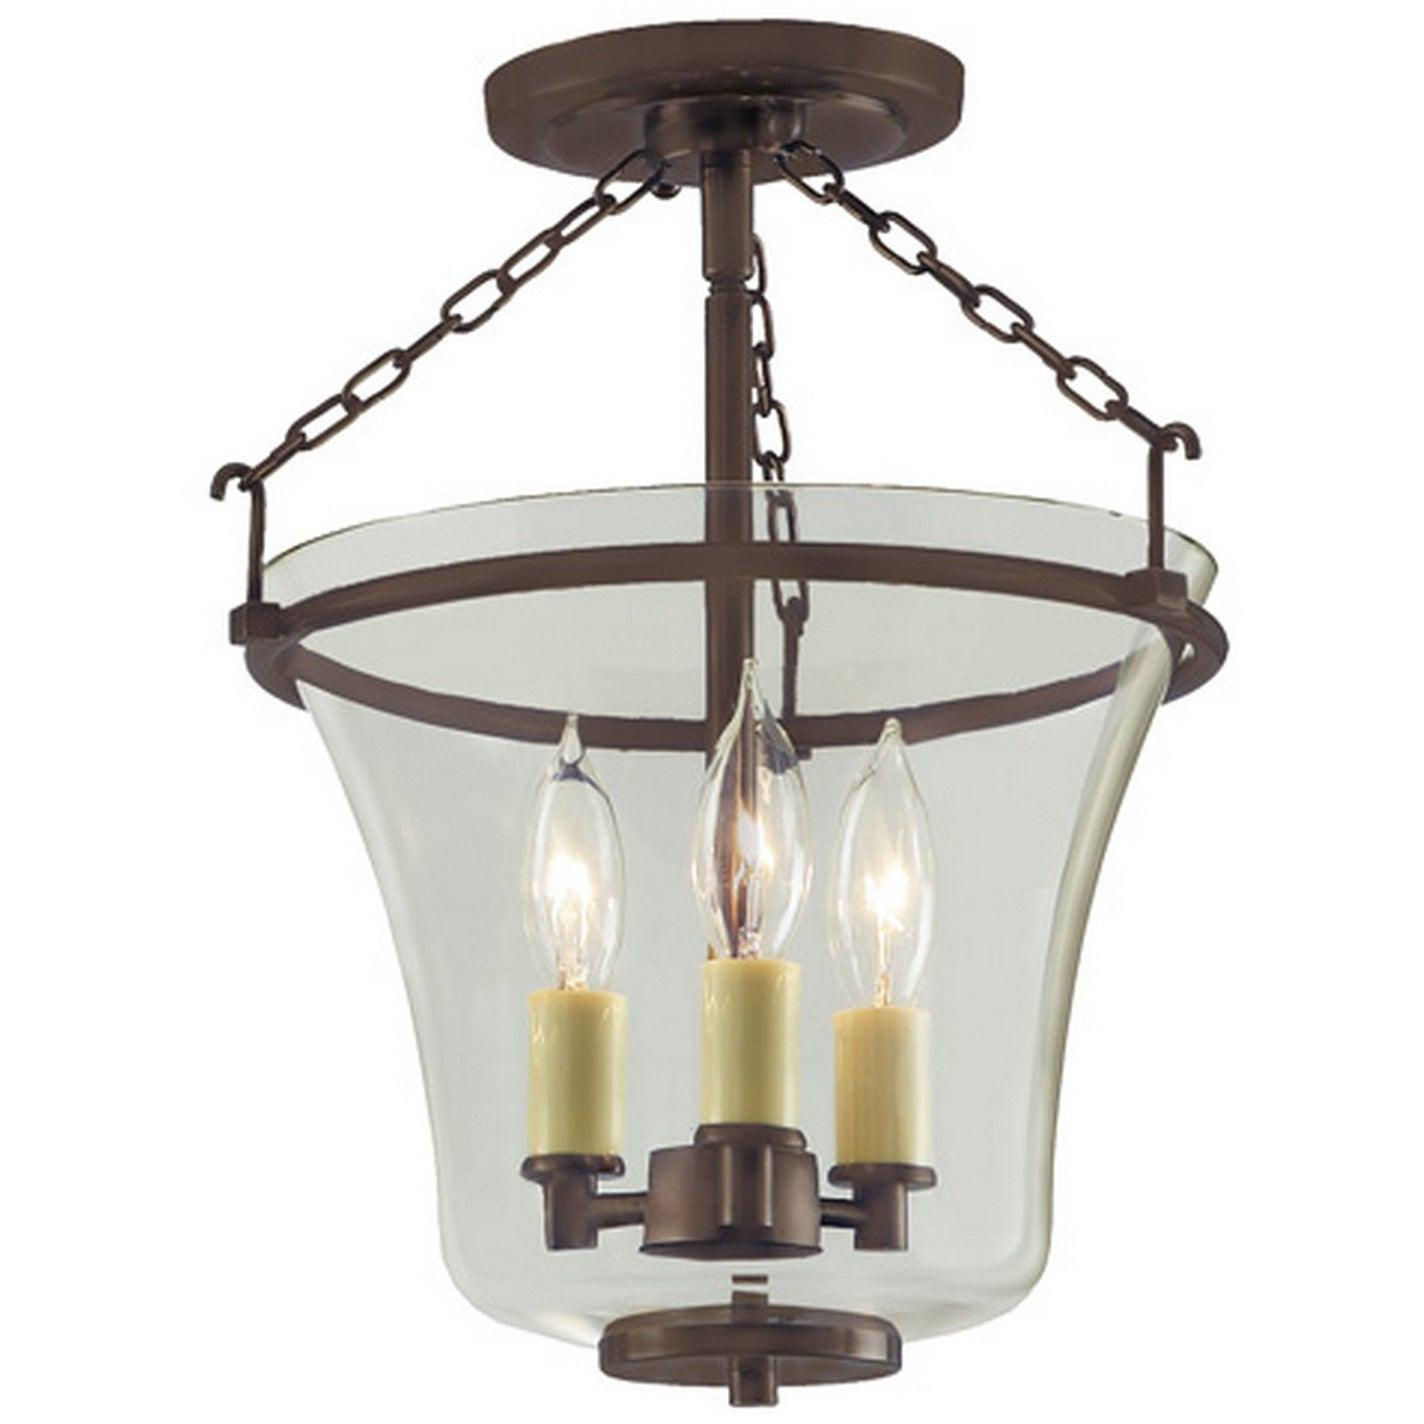 JVI Designs - 1182 - Semi Flush Mount - Greenwich - Oil Rubbed Bronze